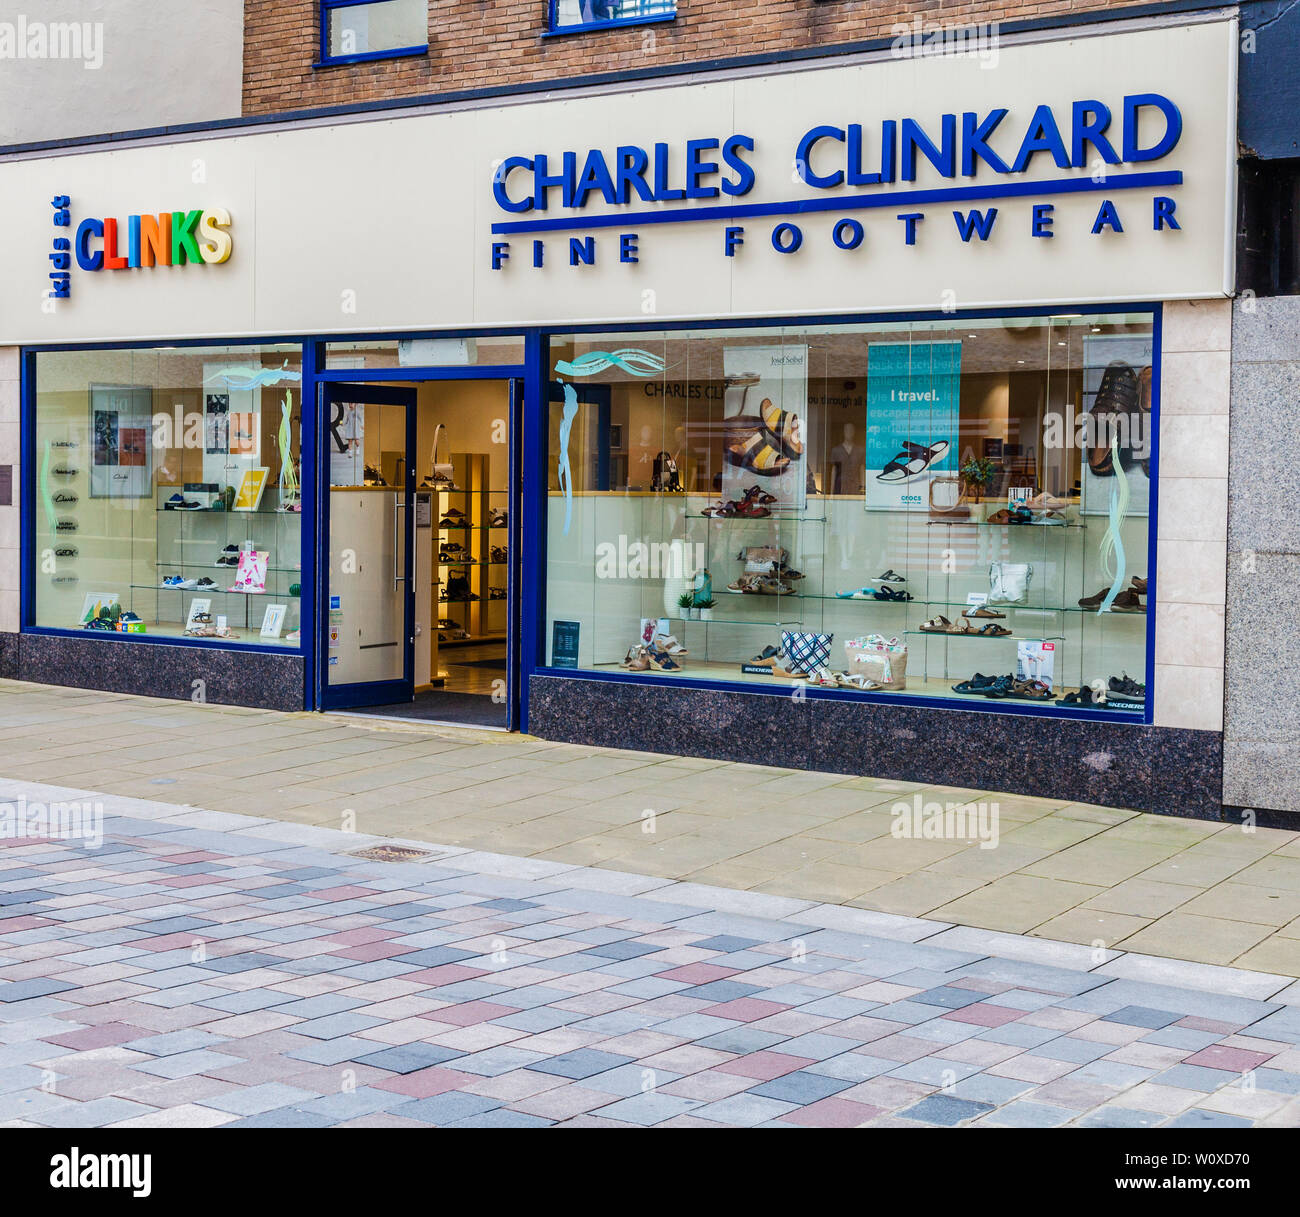 b2d32a00bd9a2 Charles Clinkard shoe shop in Darlington,England,UK - Stock Image